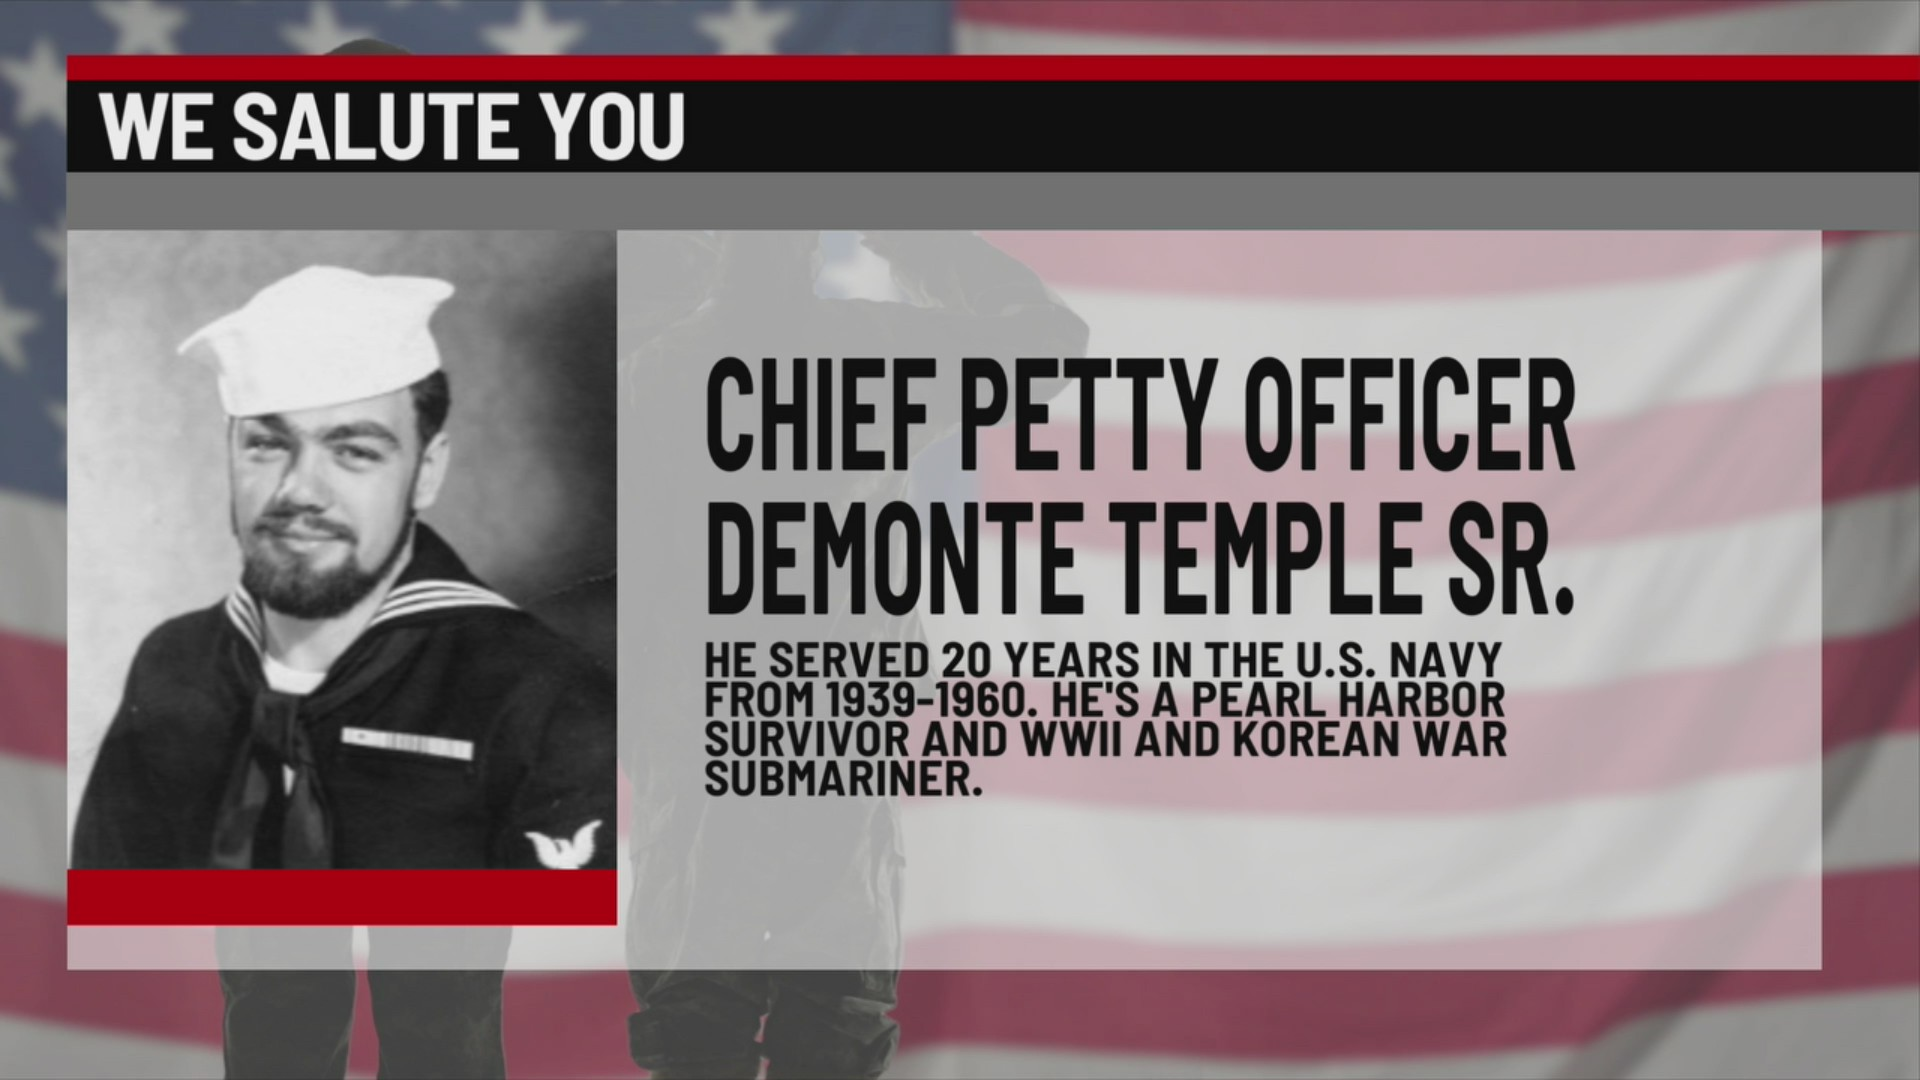 We Salute You Demonte Temple Sr.